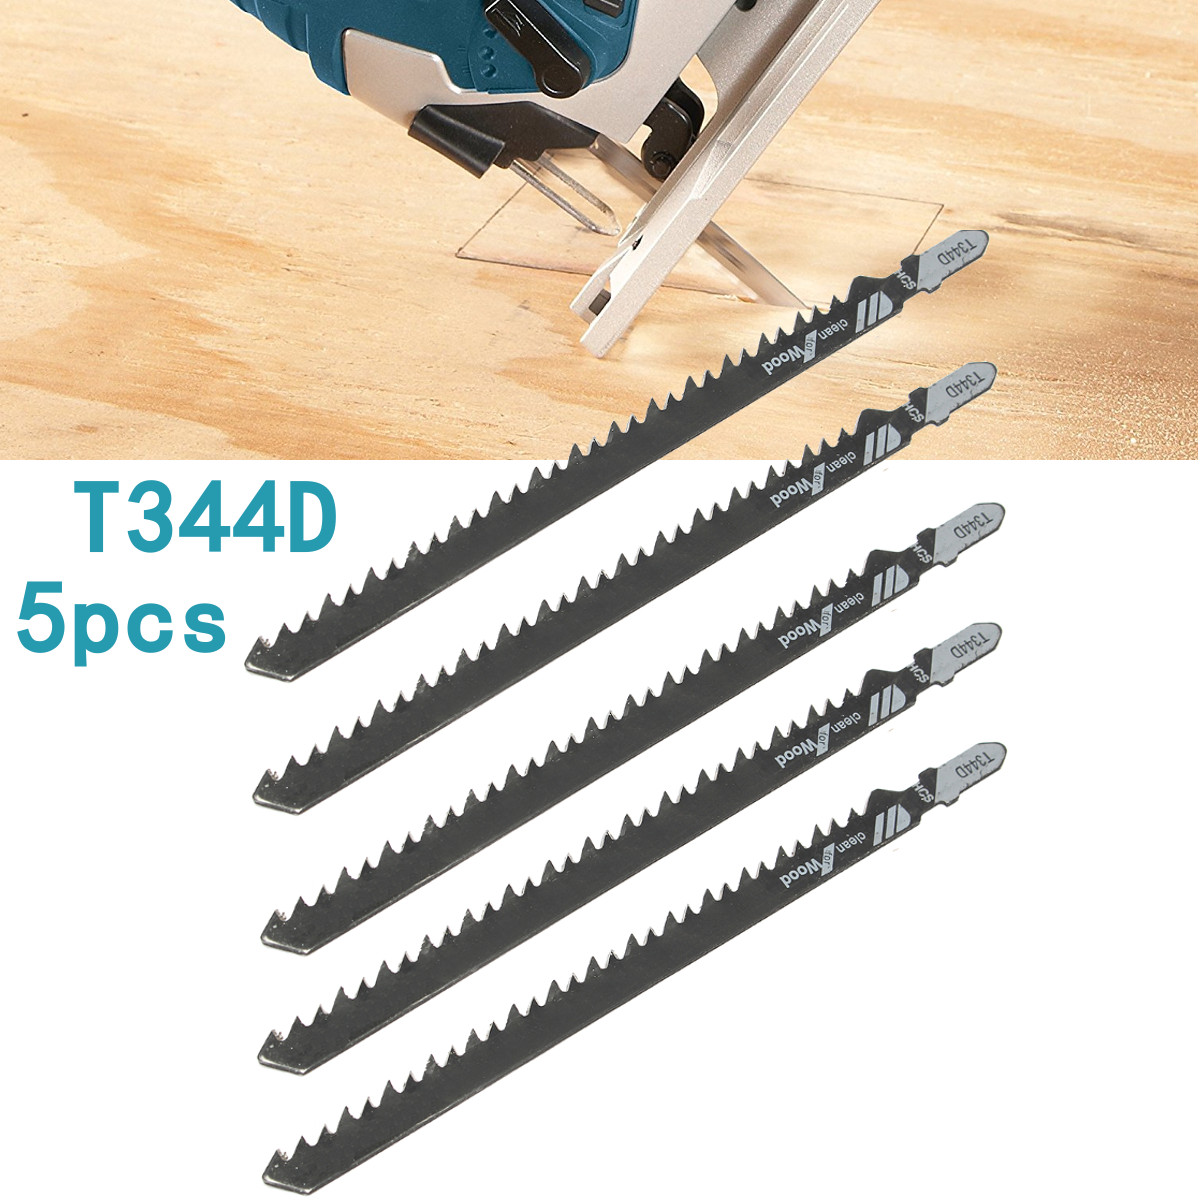 5pcs HCS T Shank Saw Blades Wood Plastics Plywood Cutti